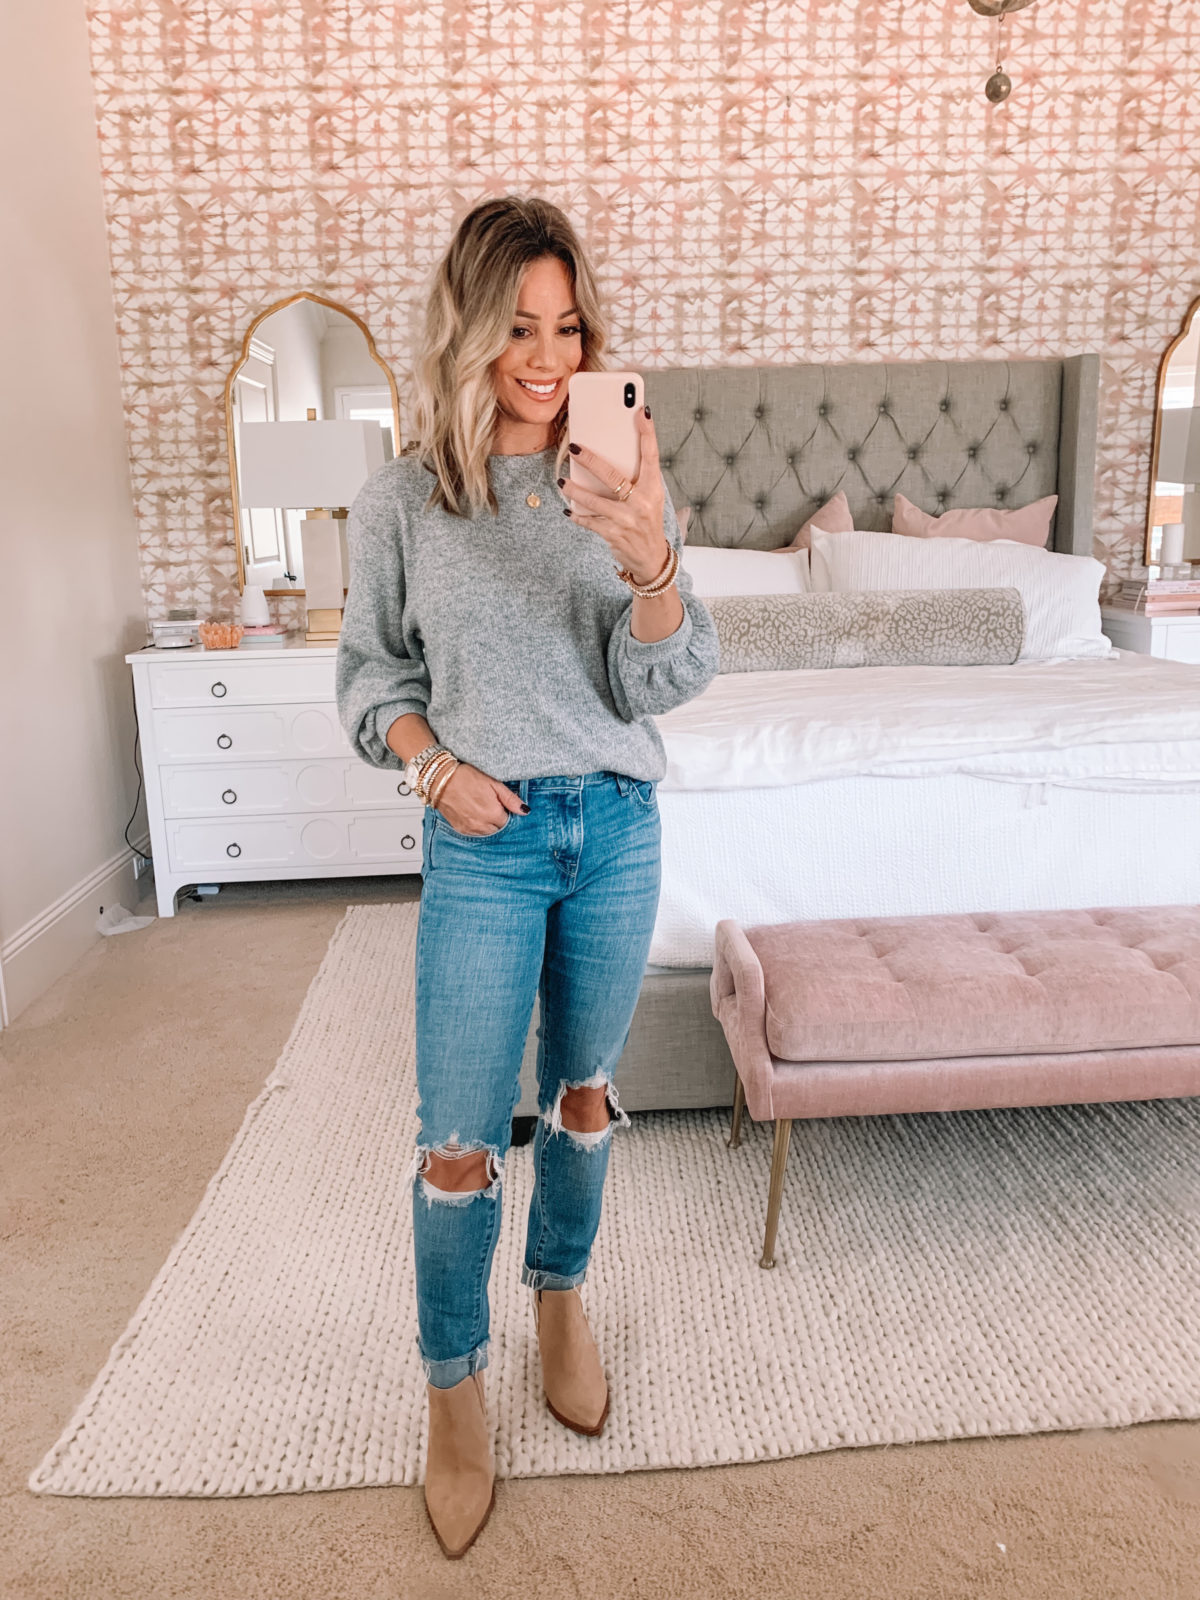 Amazon Fashion Faves, Puff Sleeve Sweater, Levis Jeans, Booties